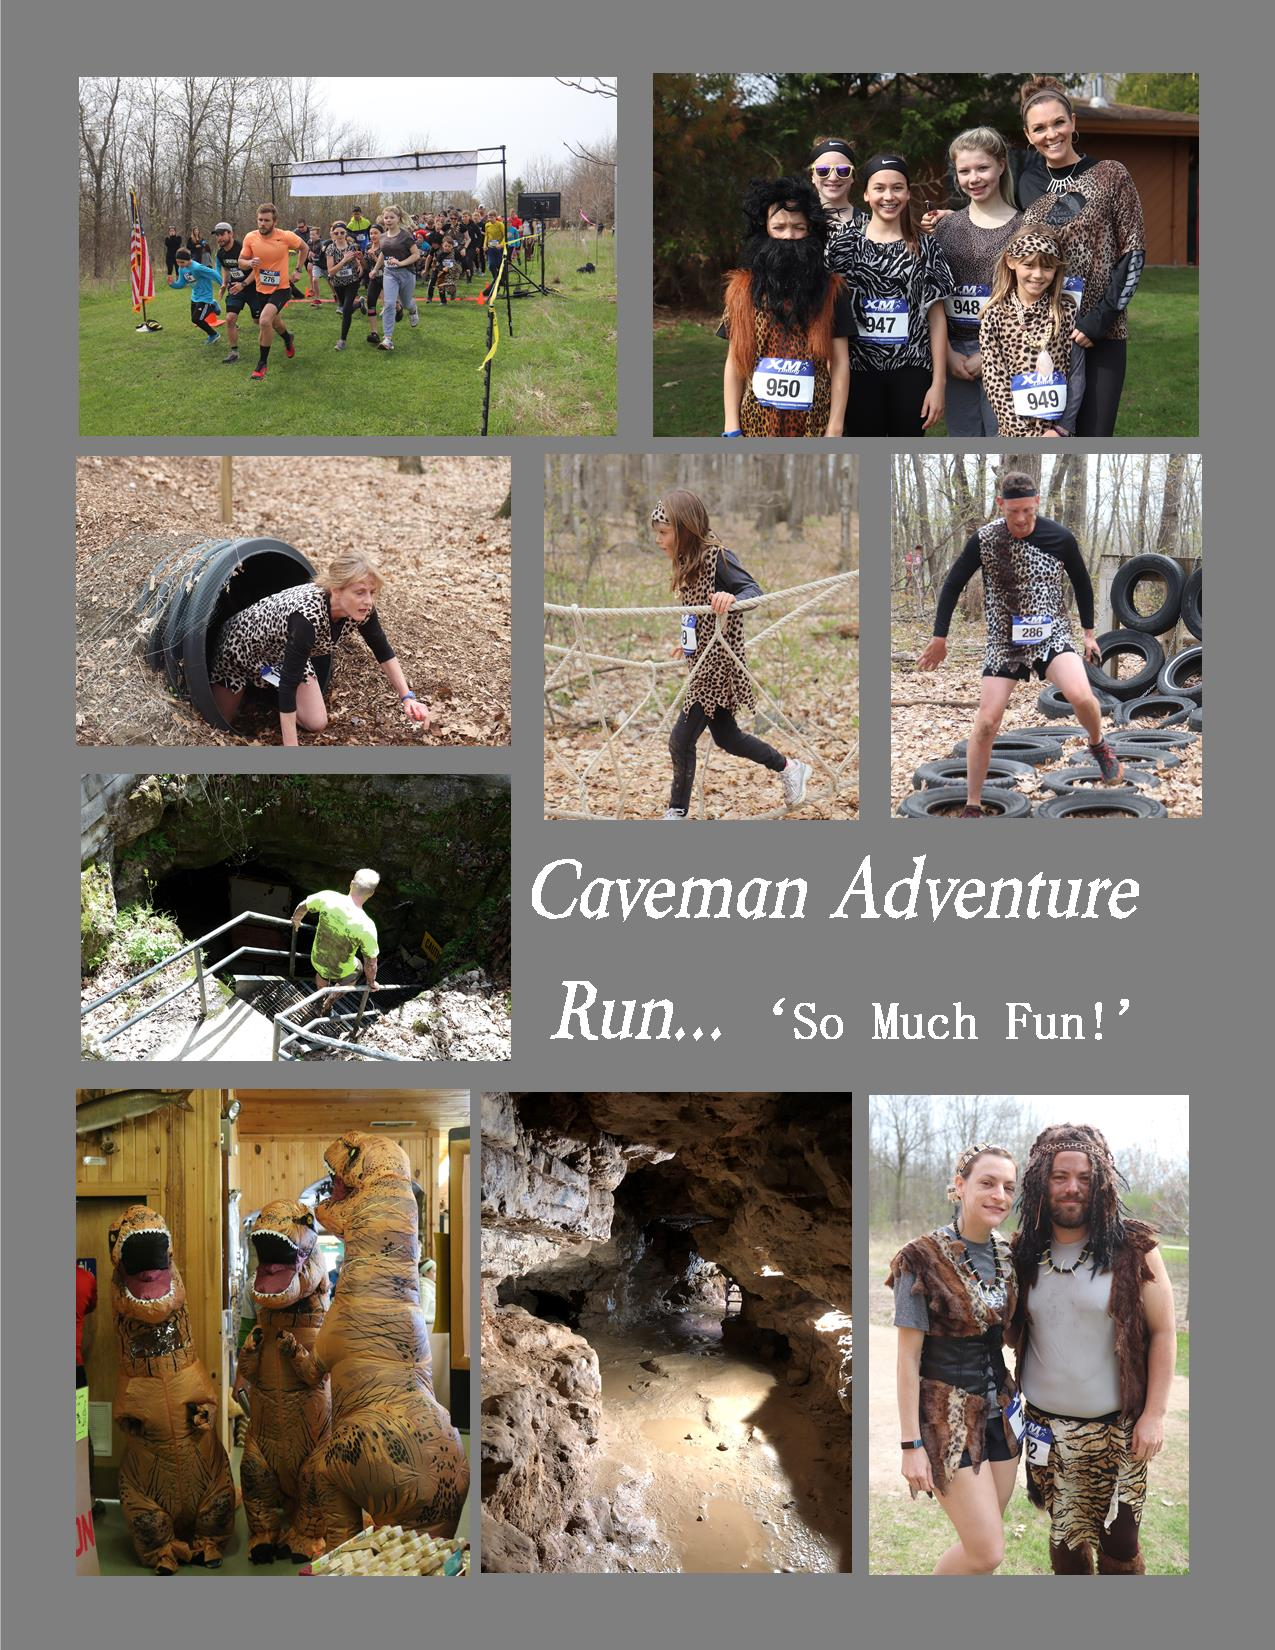 A poster showing photos of people participating in the caveman adventure run.